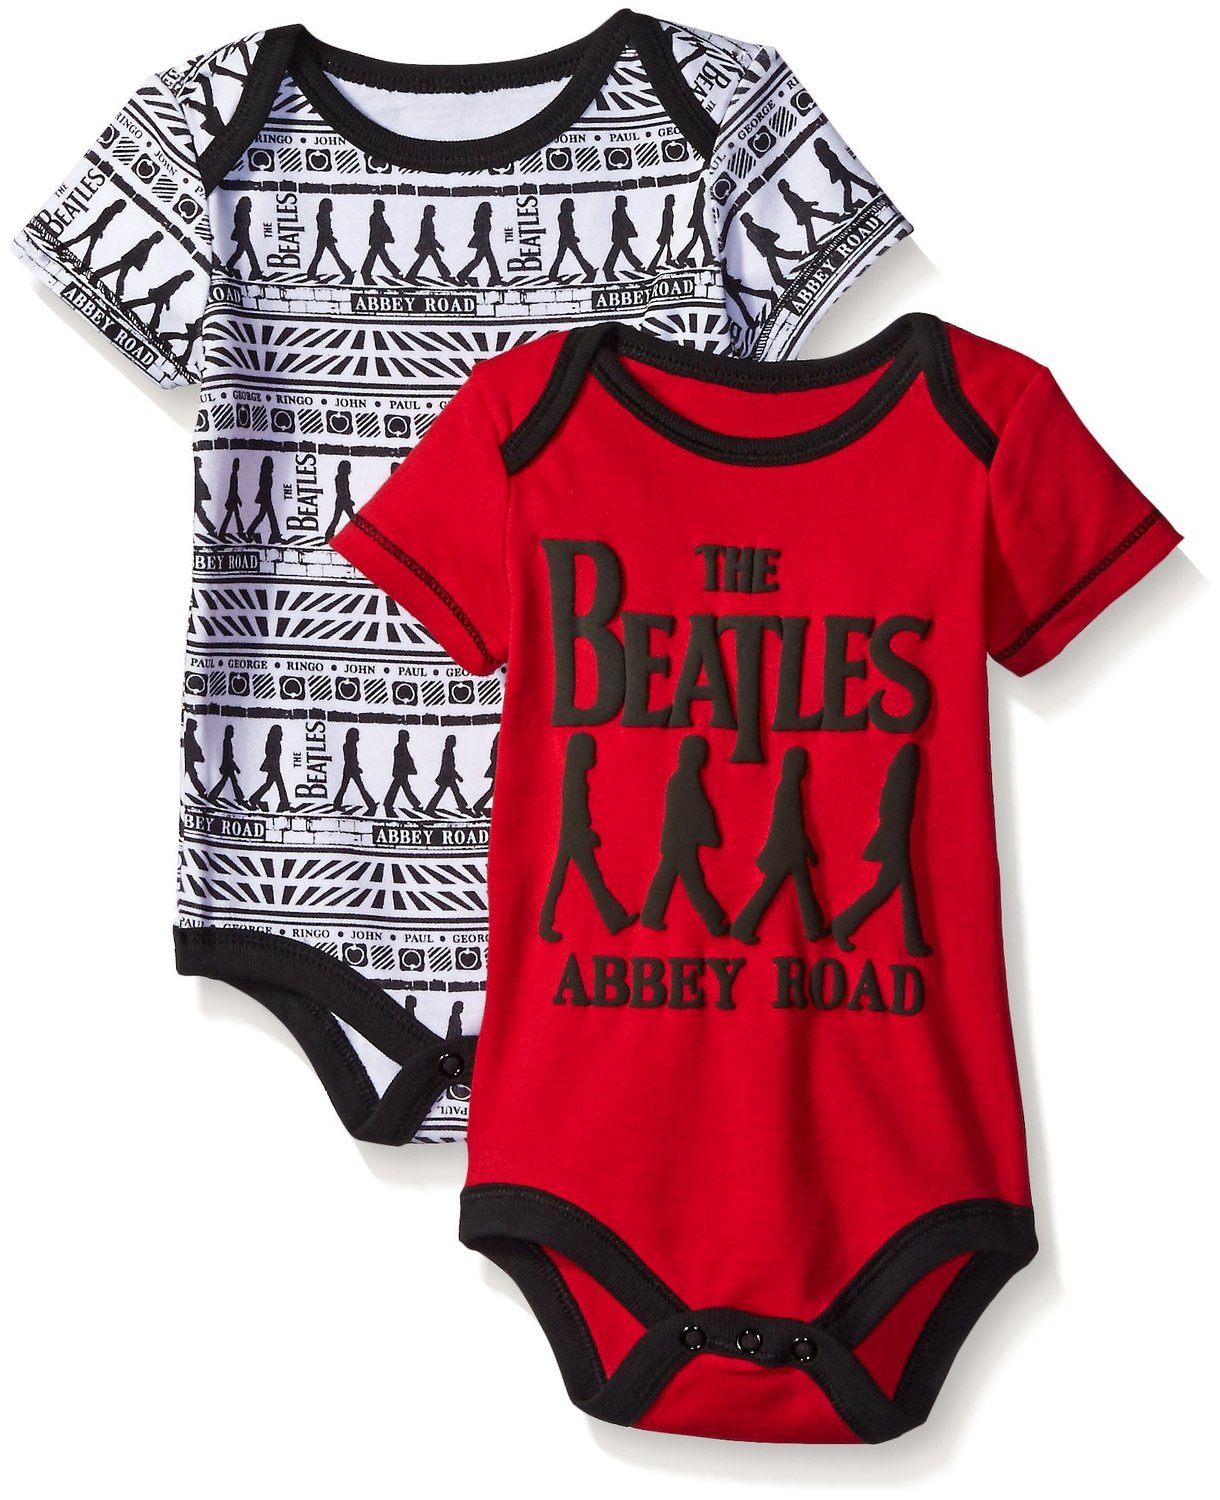 UGFGF-S3 Accordion Player Evolution Long Sleeve Infant Baby Unisex Baby Romper Jumpsuit Onsies for 6-24 Months Bodysuit